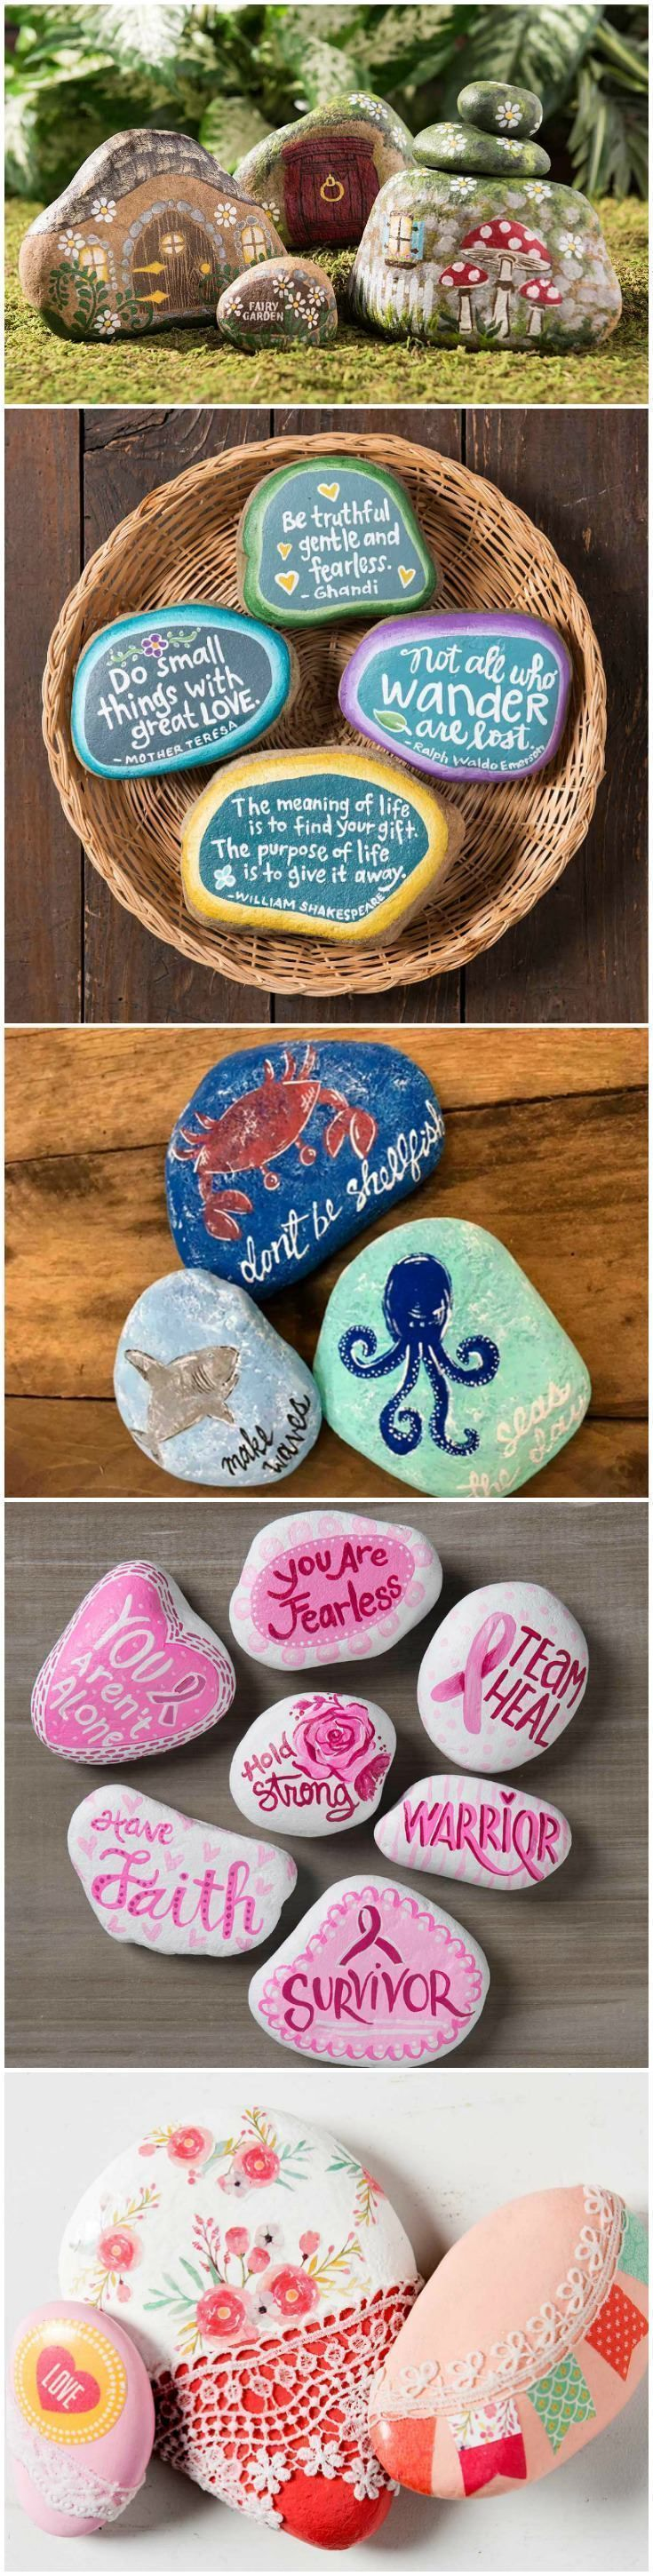 10 Easy Painted Rocks That Are Fun to Make & Tips